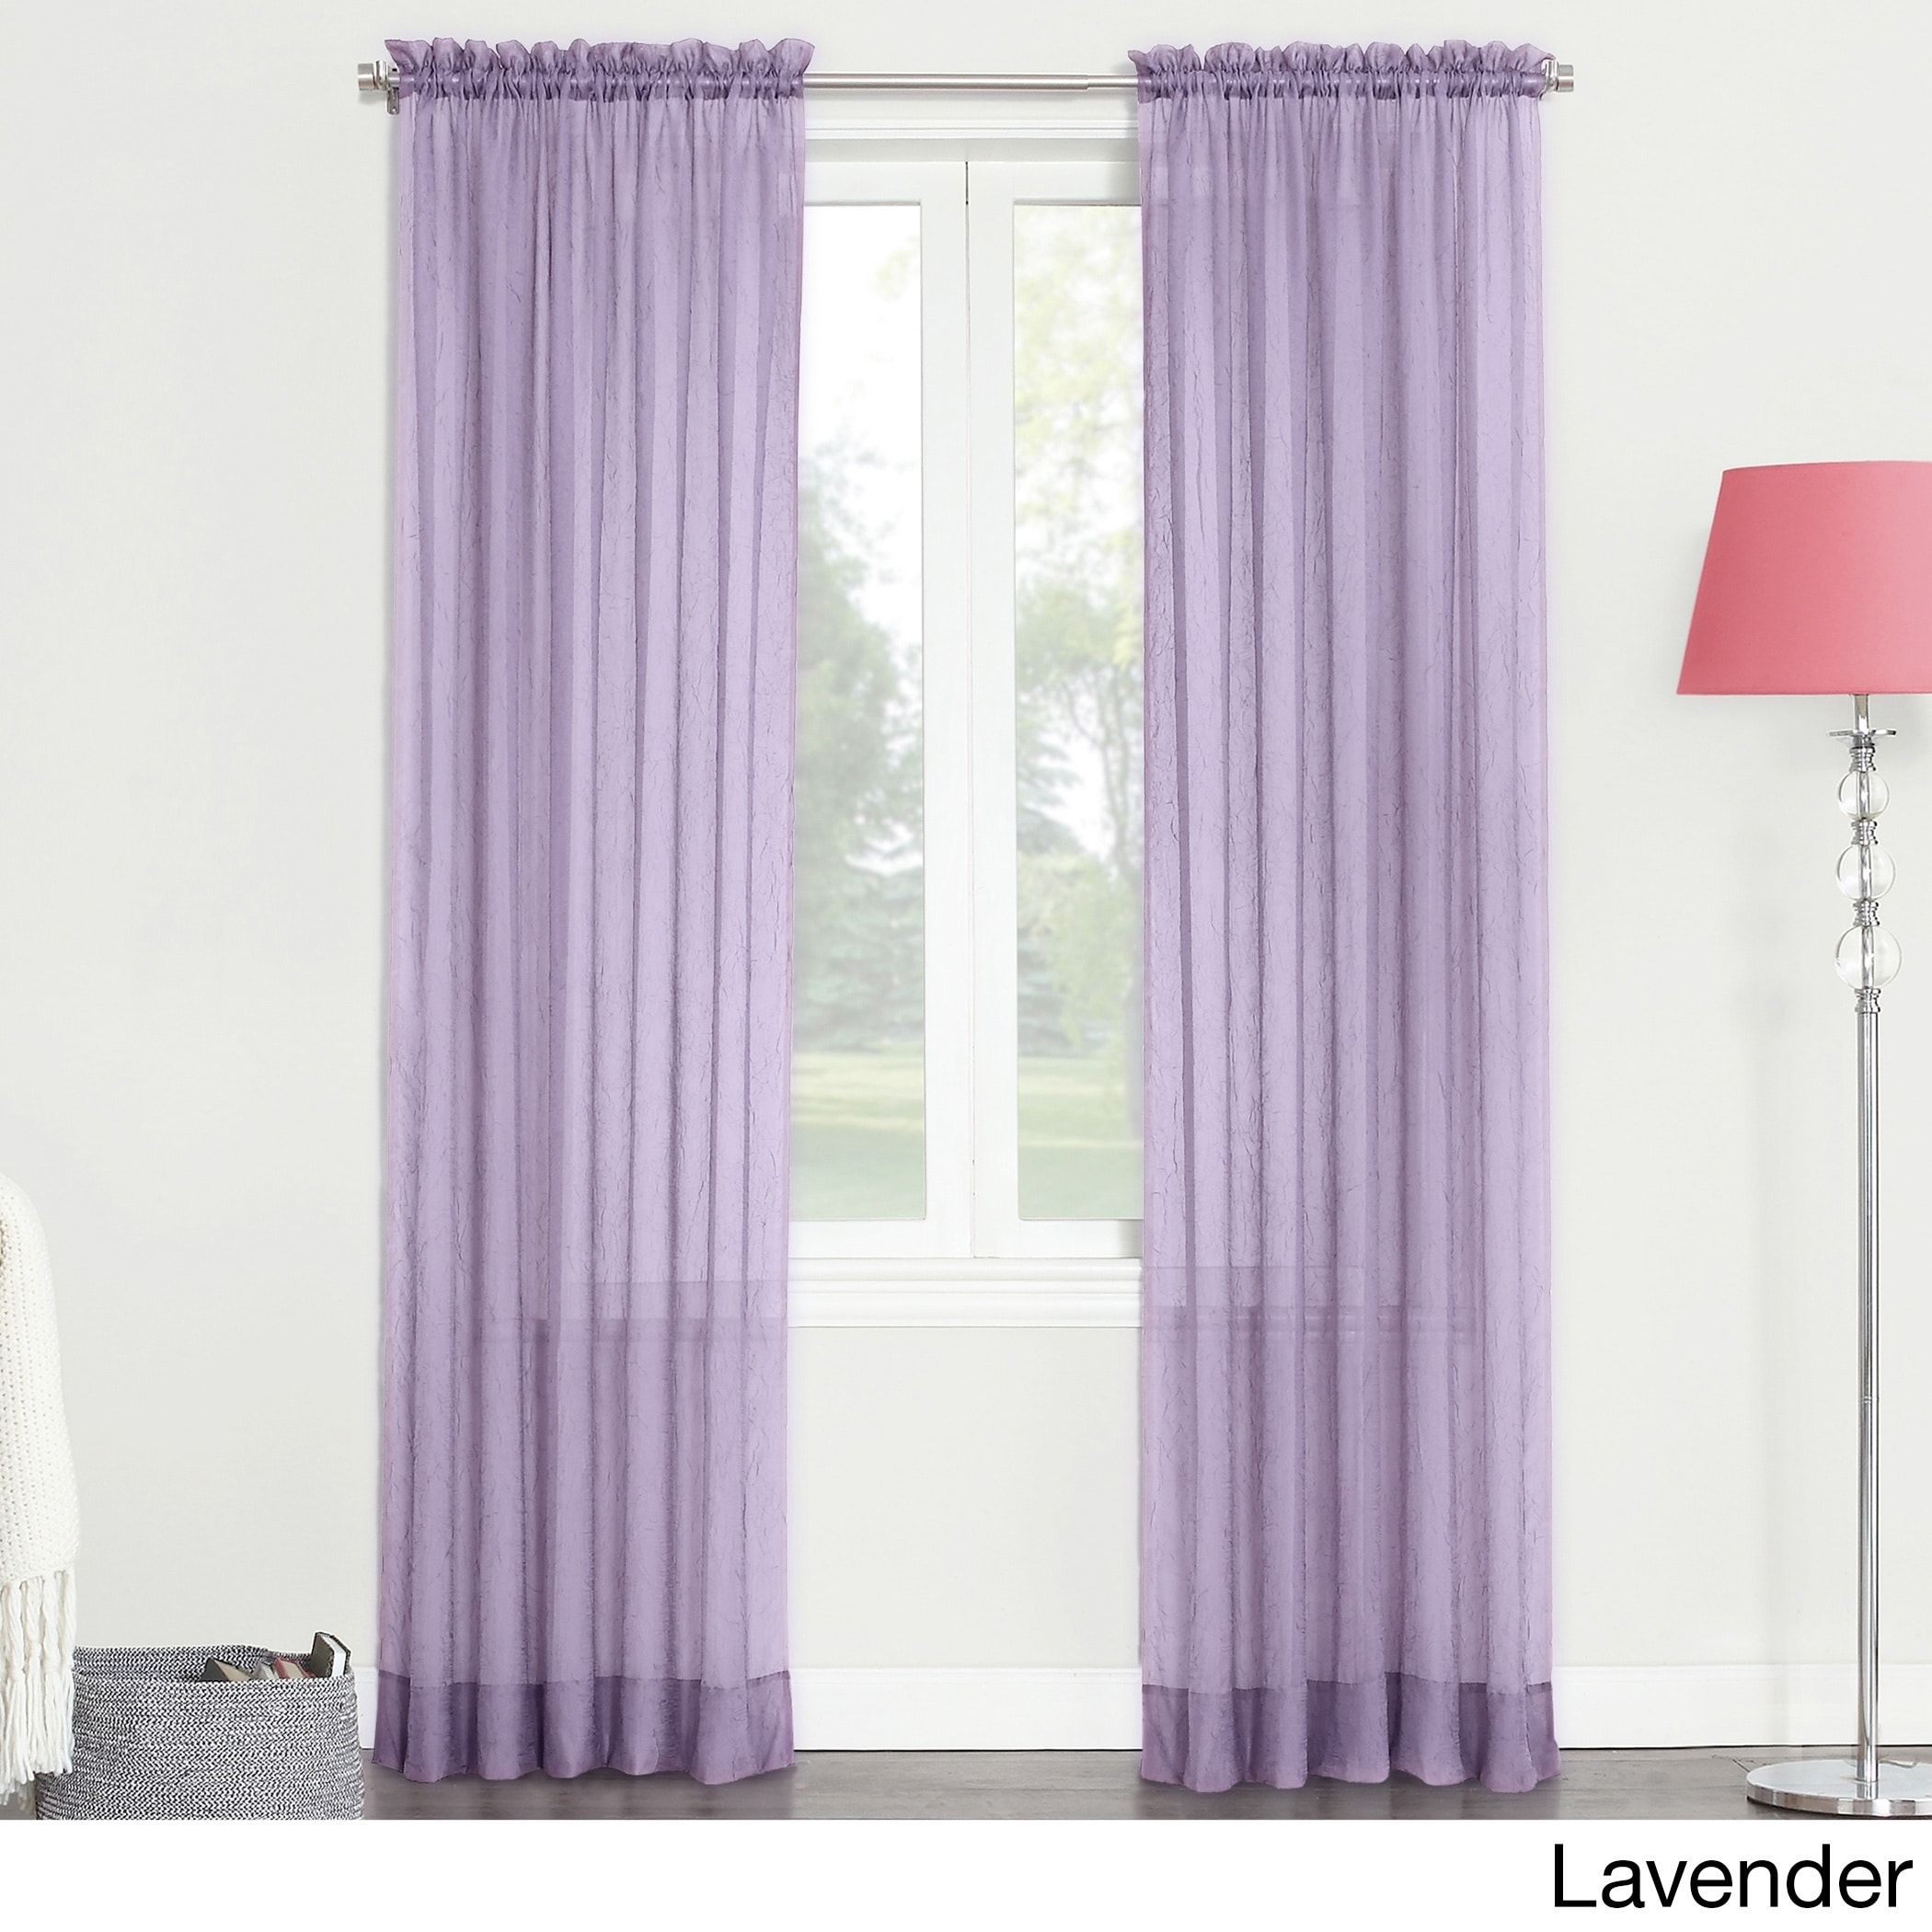 by seaside bright purple of impressive the curtain curtains design grommetrtains inchpurplertain panels photos coastal sheer full grommet size top panelsbrightrtainspurple